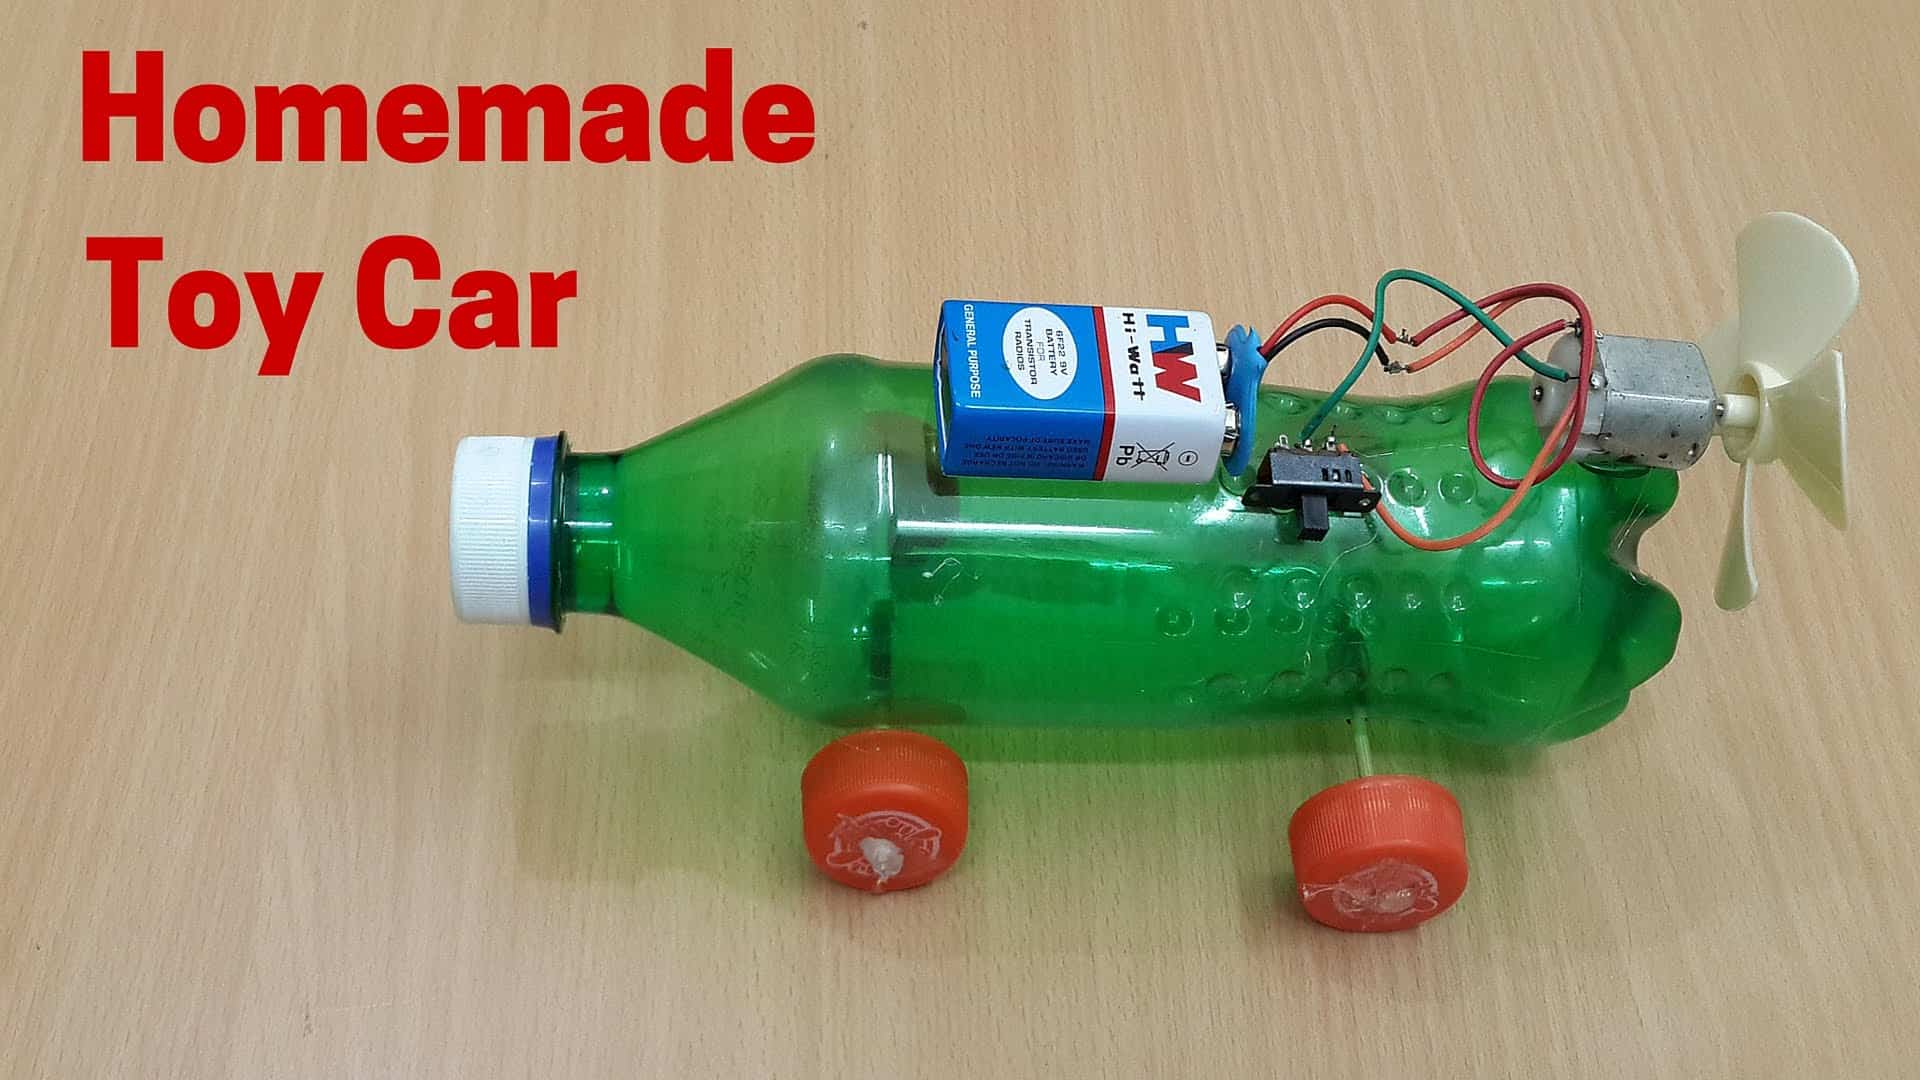 Sew A Toy Car Holder : Awesome diy toy car projects